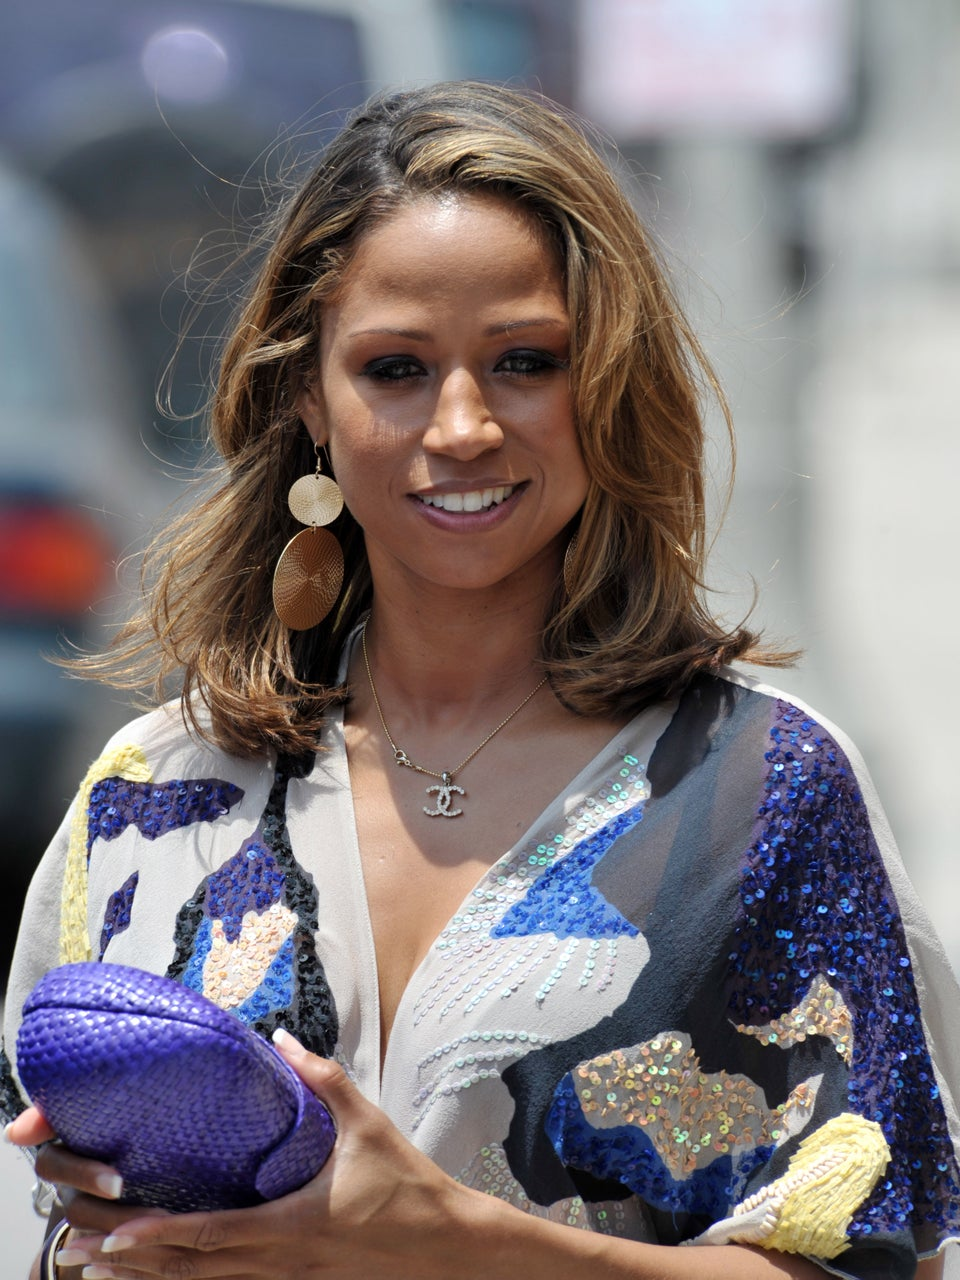 Stacey Dash Launches Music Career with Dance Track